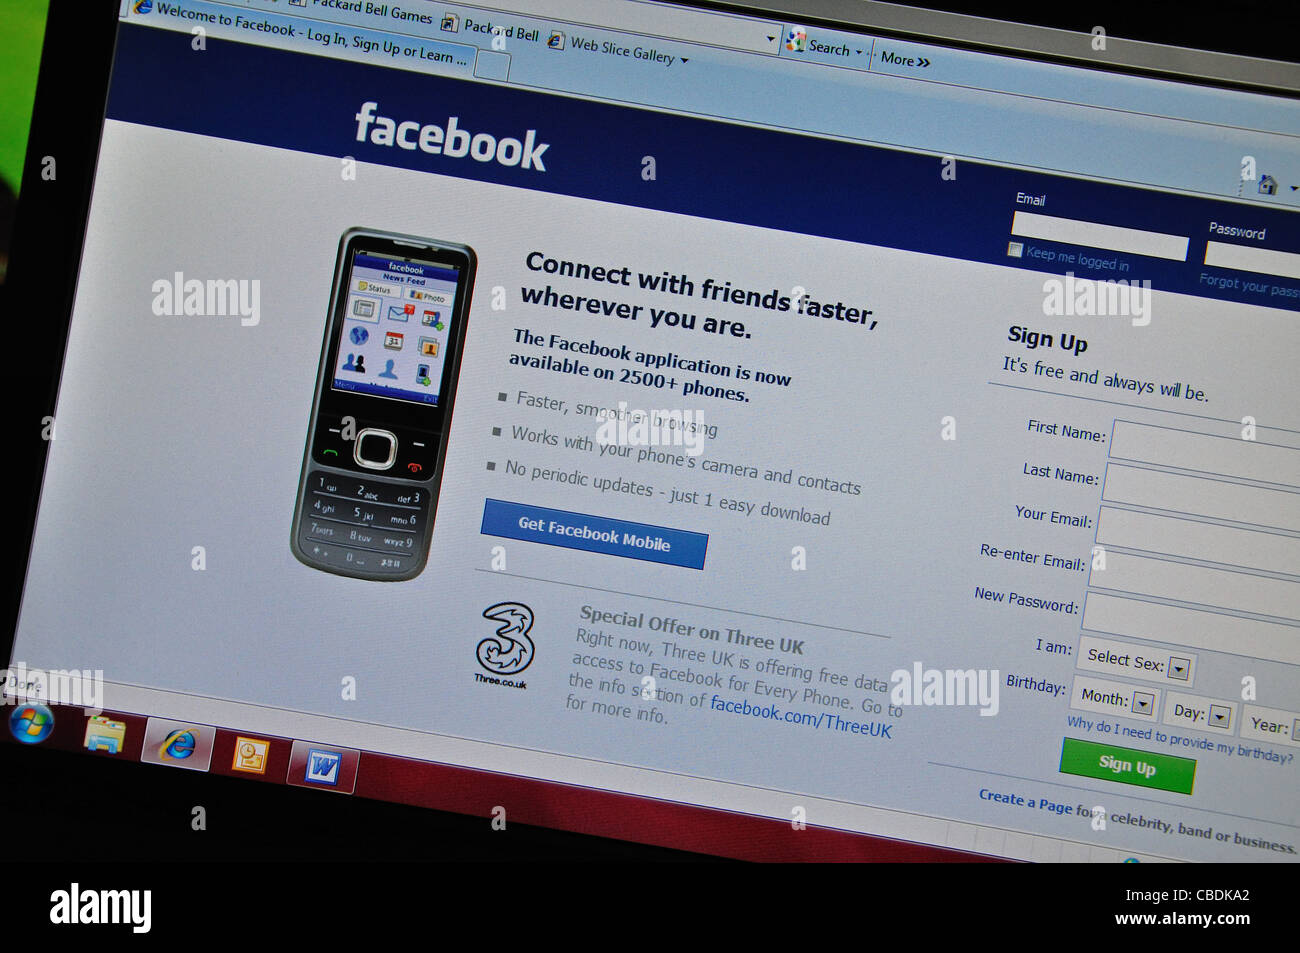 Facebook log-in page on computer screen, Greater London, England, United Kingdom - Stock Image